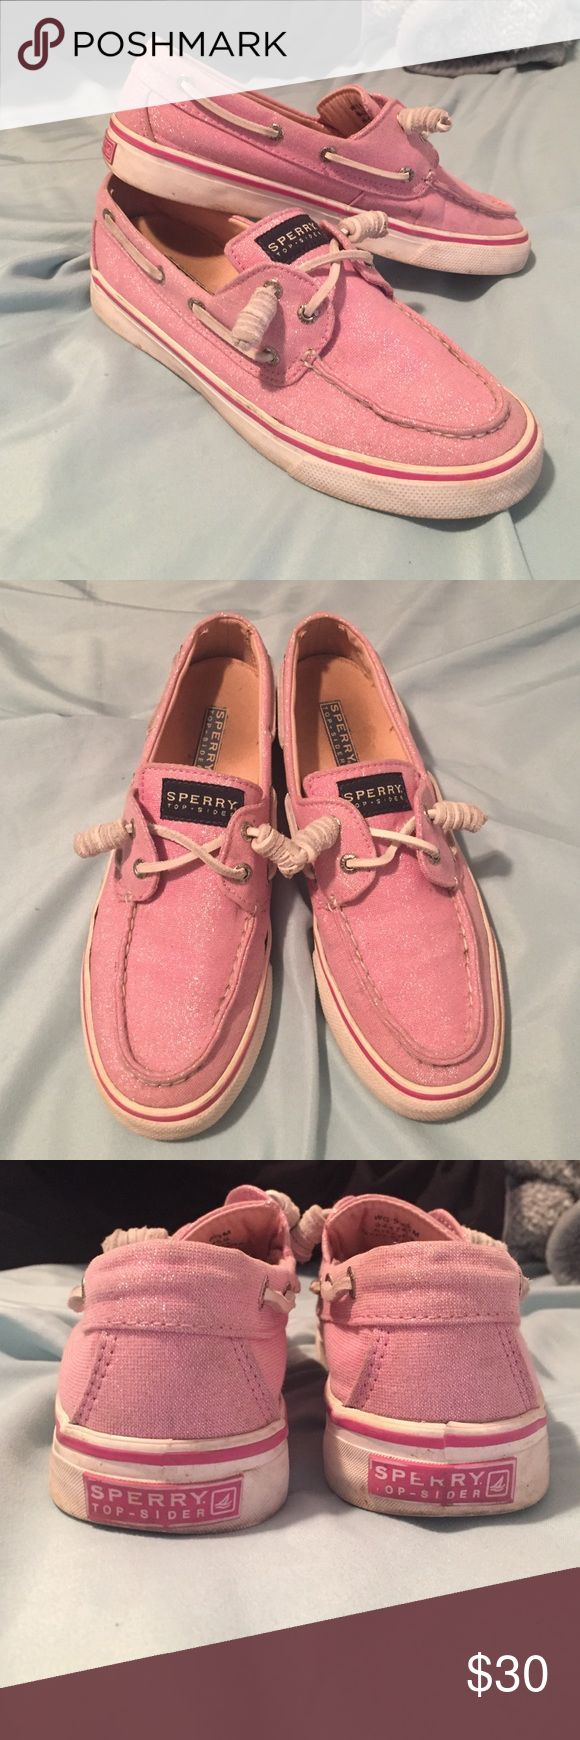 ✨Sale✨Sparkly Pink Sperry Top Siders💕 These Sperry's have been pre-loved but are still in great condition! Super cute color that would make any outfit pop ⭐️ feel free to ask questions and make offers. NO TRADES. Womens size 6.5. Cheaper on Ⓜ️ercari! Sperry Top-Sider Shoes